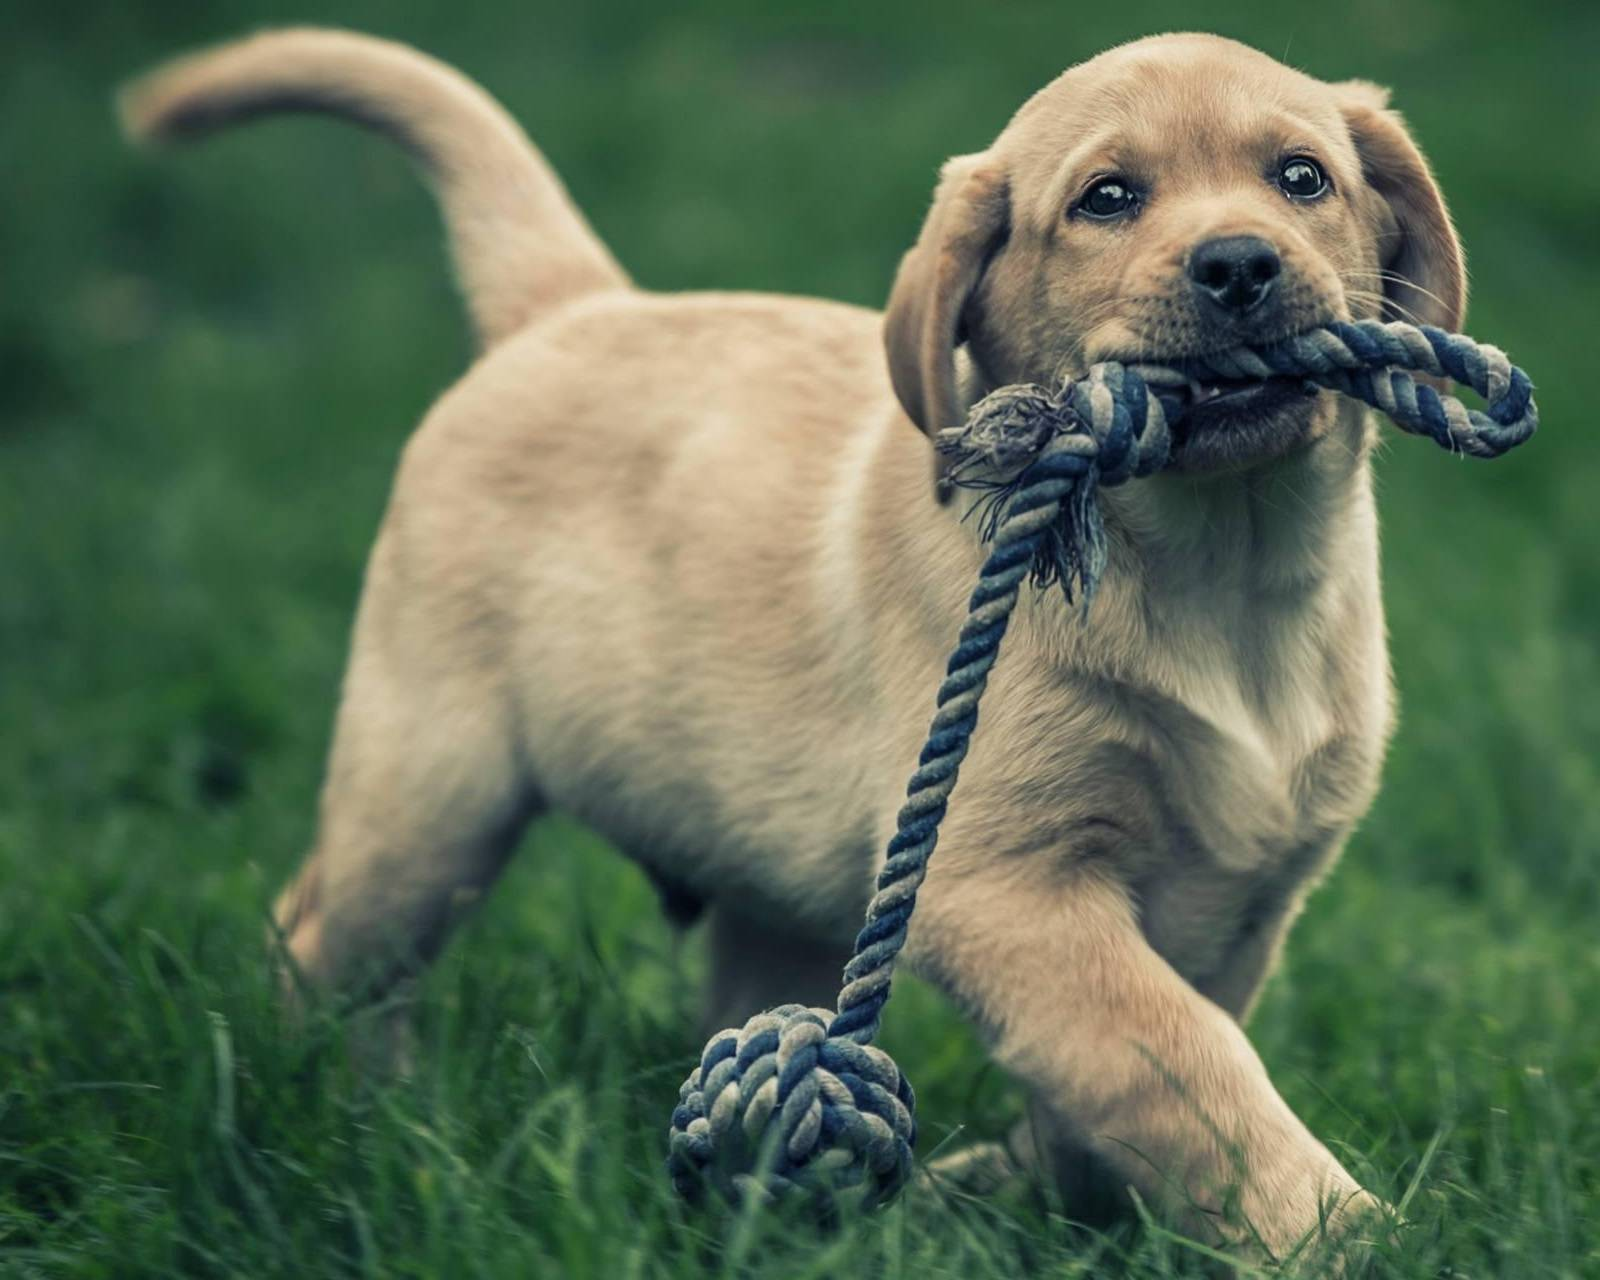 Its Knot play time